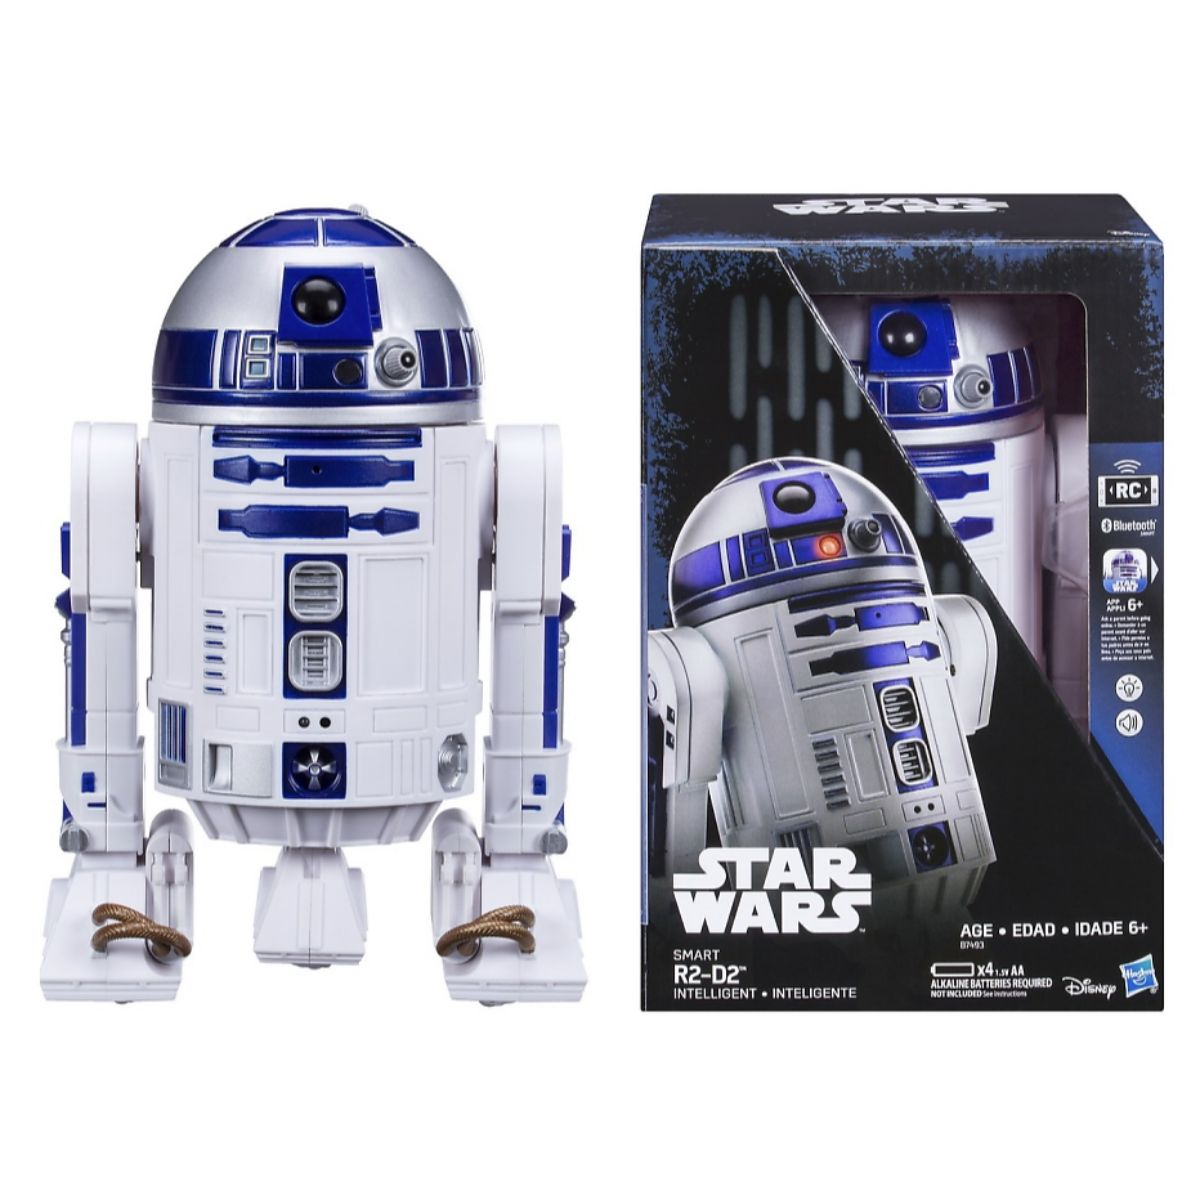 Blutooth STAR WARS HASBRO R2-D2 INTERACTIVE ASTROMECH DROID ROBOT